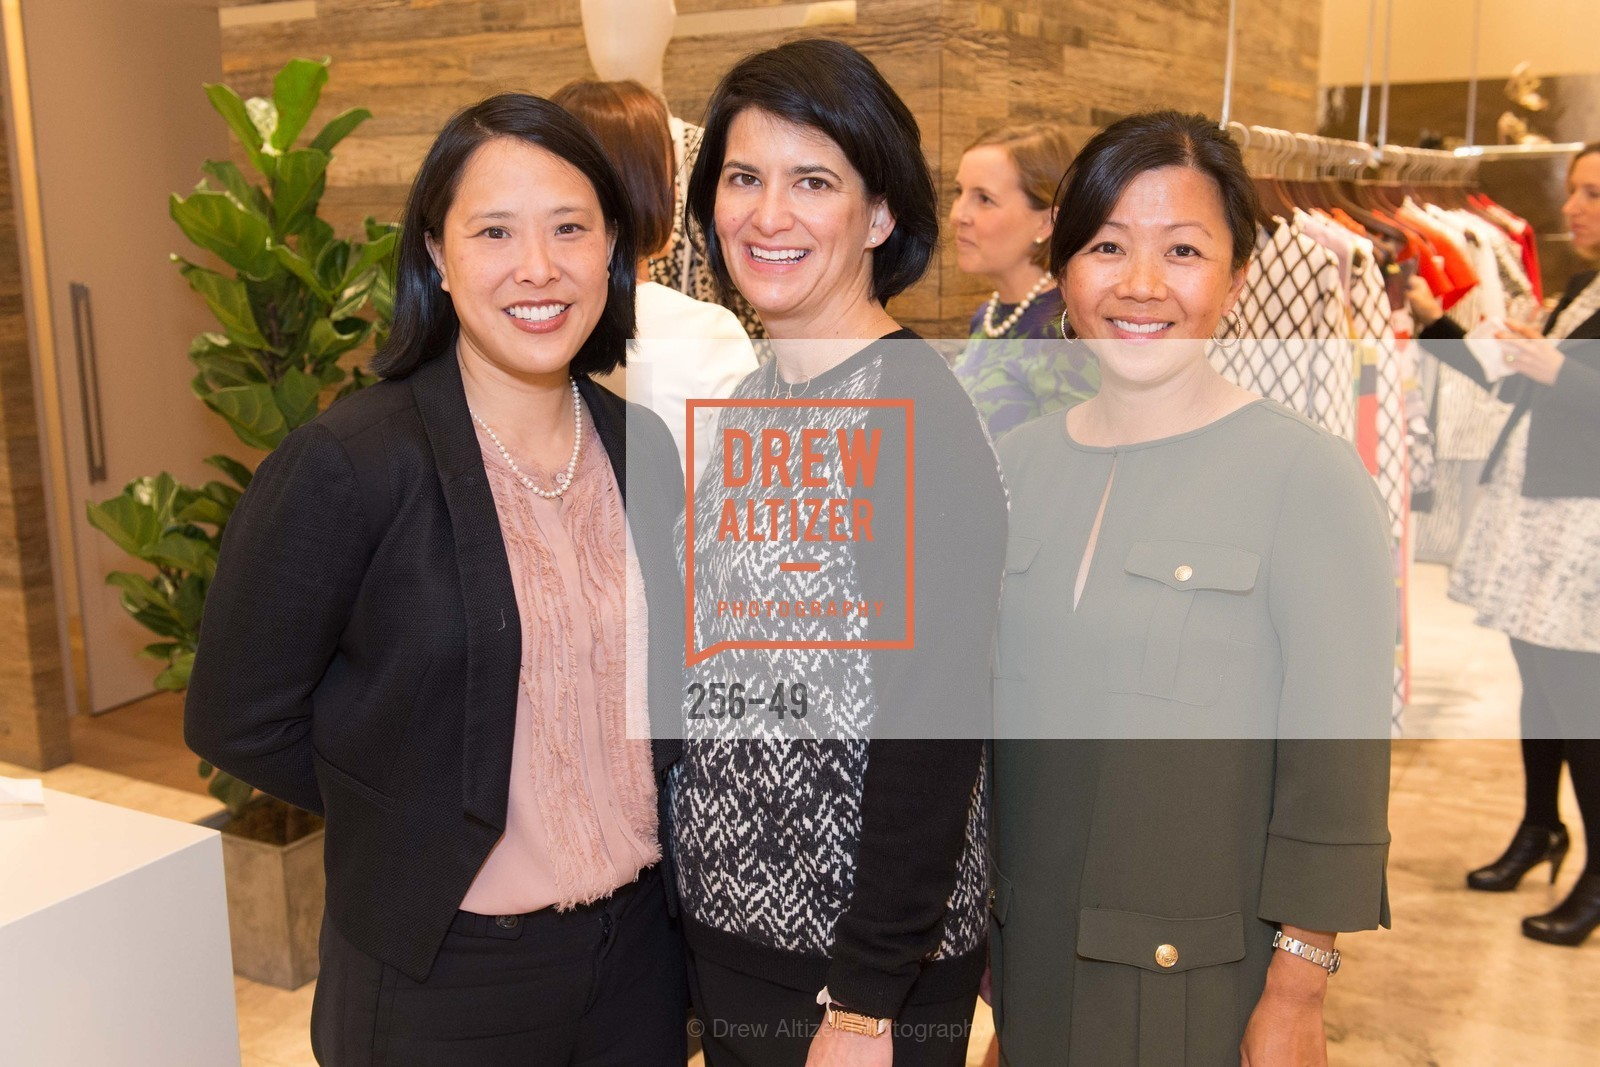 Adrianne Yamaki, Jennifer Bearline, Wendy Fraser, Luncheon Hosted by Max Mara, Max Mara. 175 Post St, San Francisco, CA 94108, April 21st, 2015,Drew Altizer, Drew Altizer Photography, full-service agency, private events, San Francisco photographer, photographer california